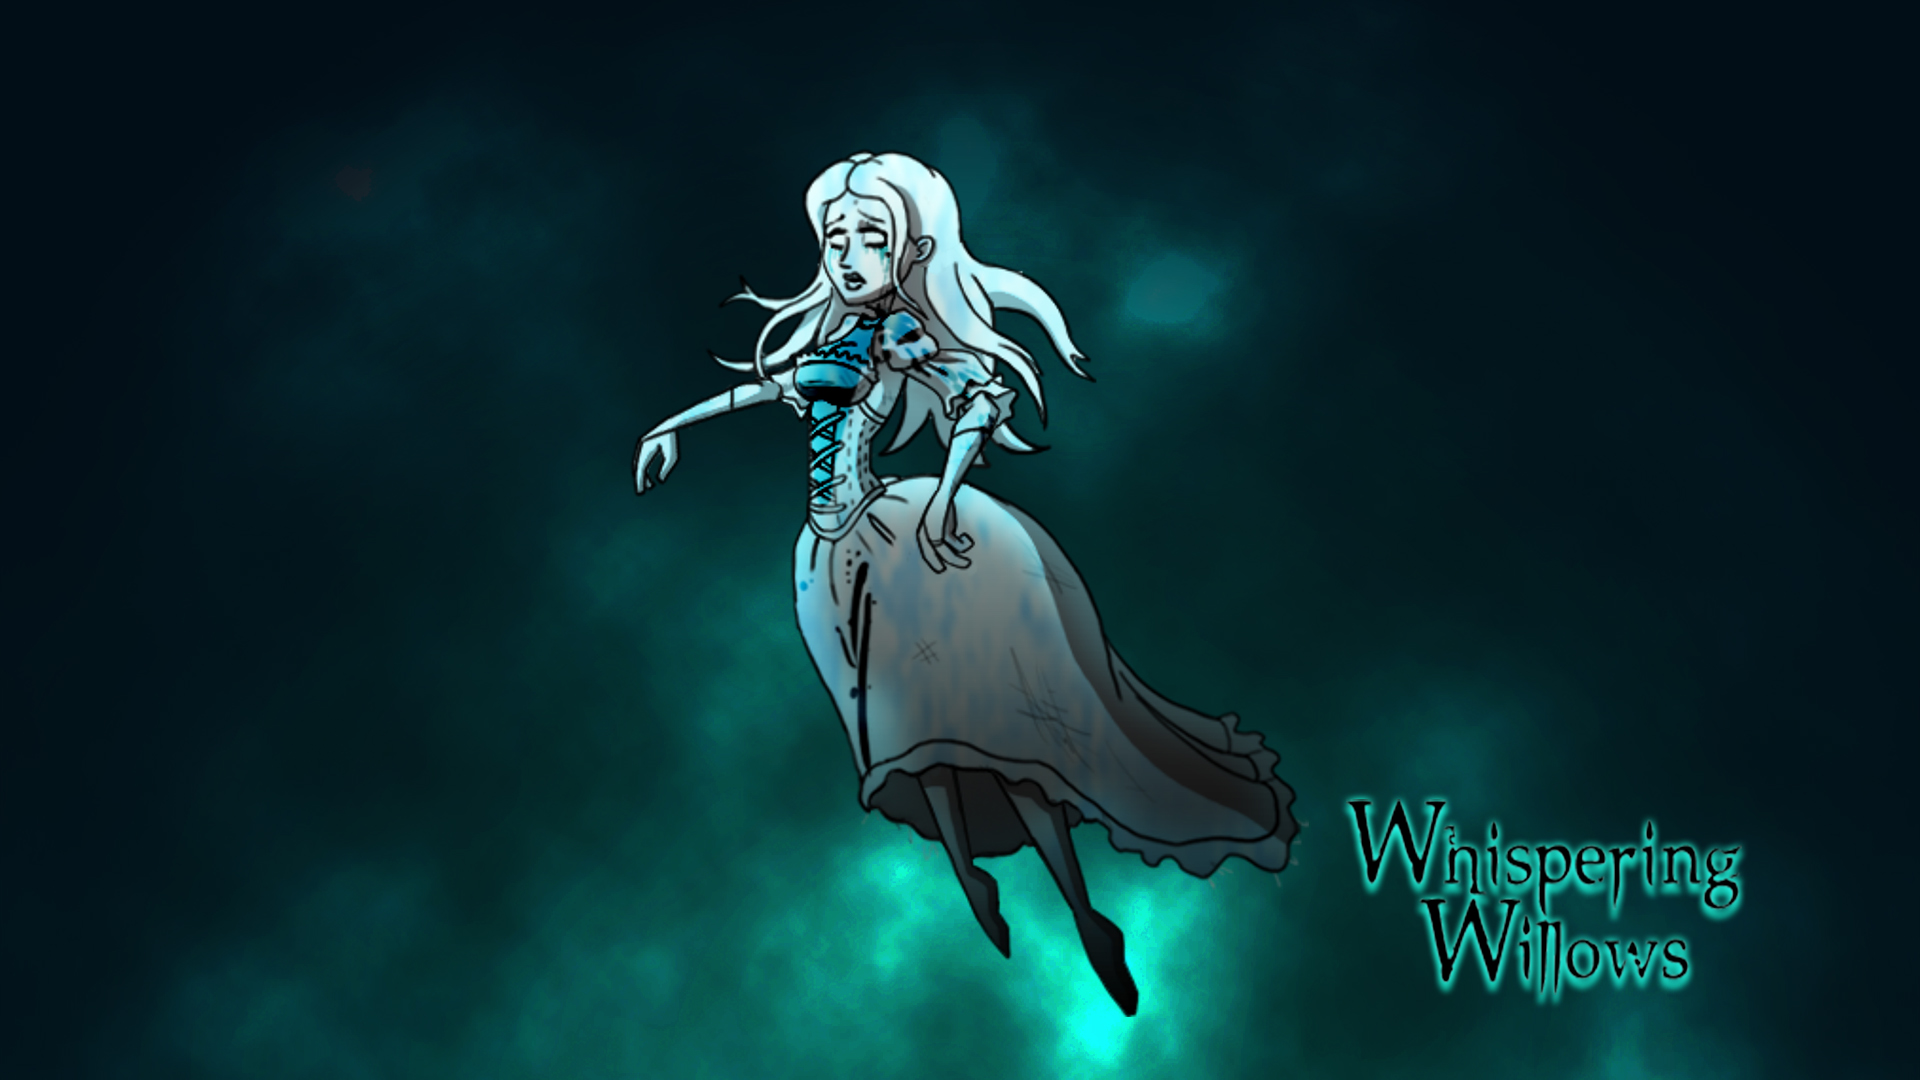 Steam Card Exchange Showcase Whispering Willows